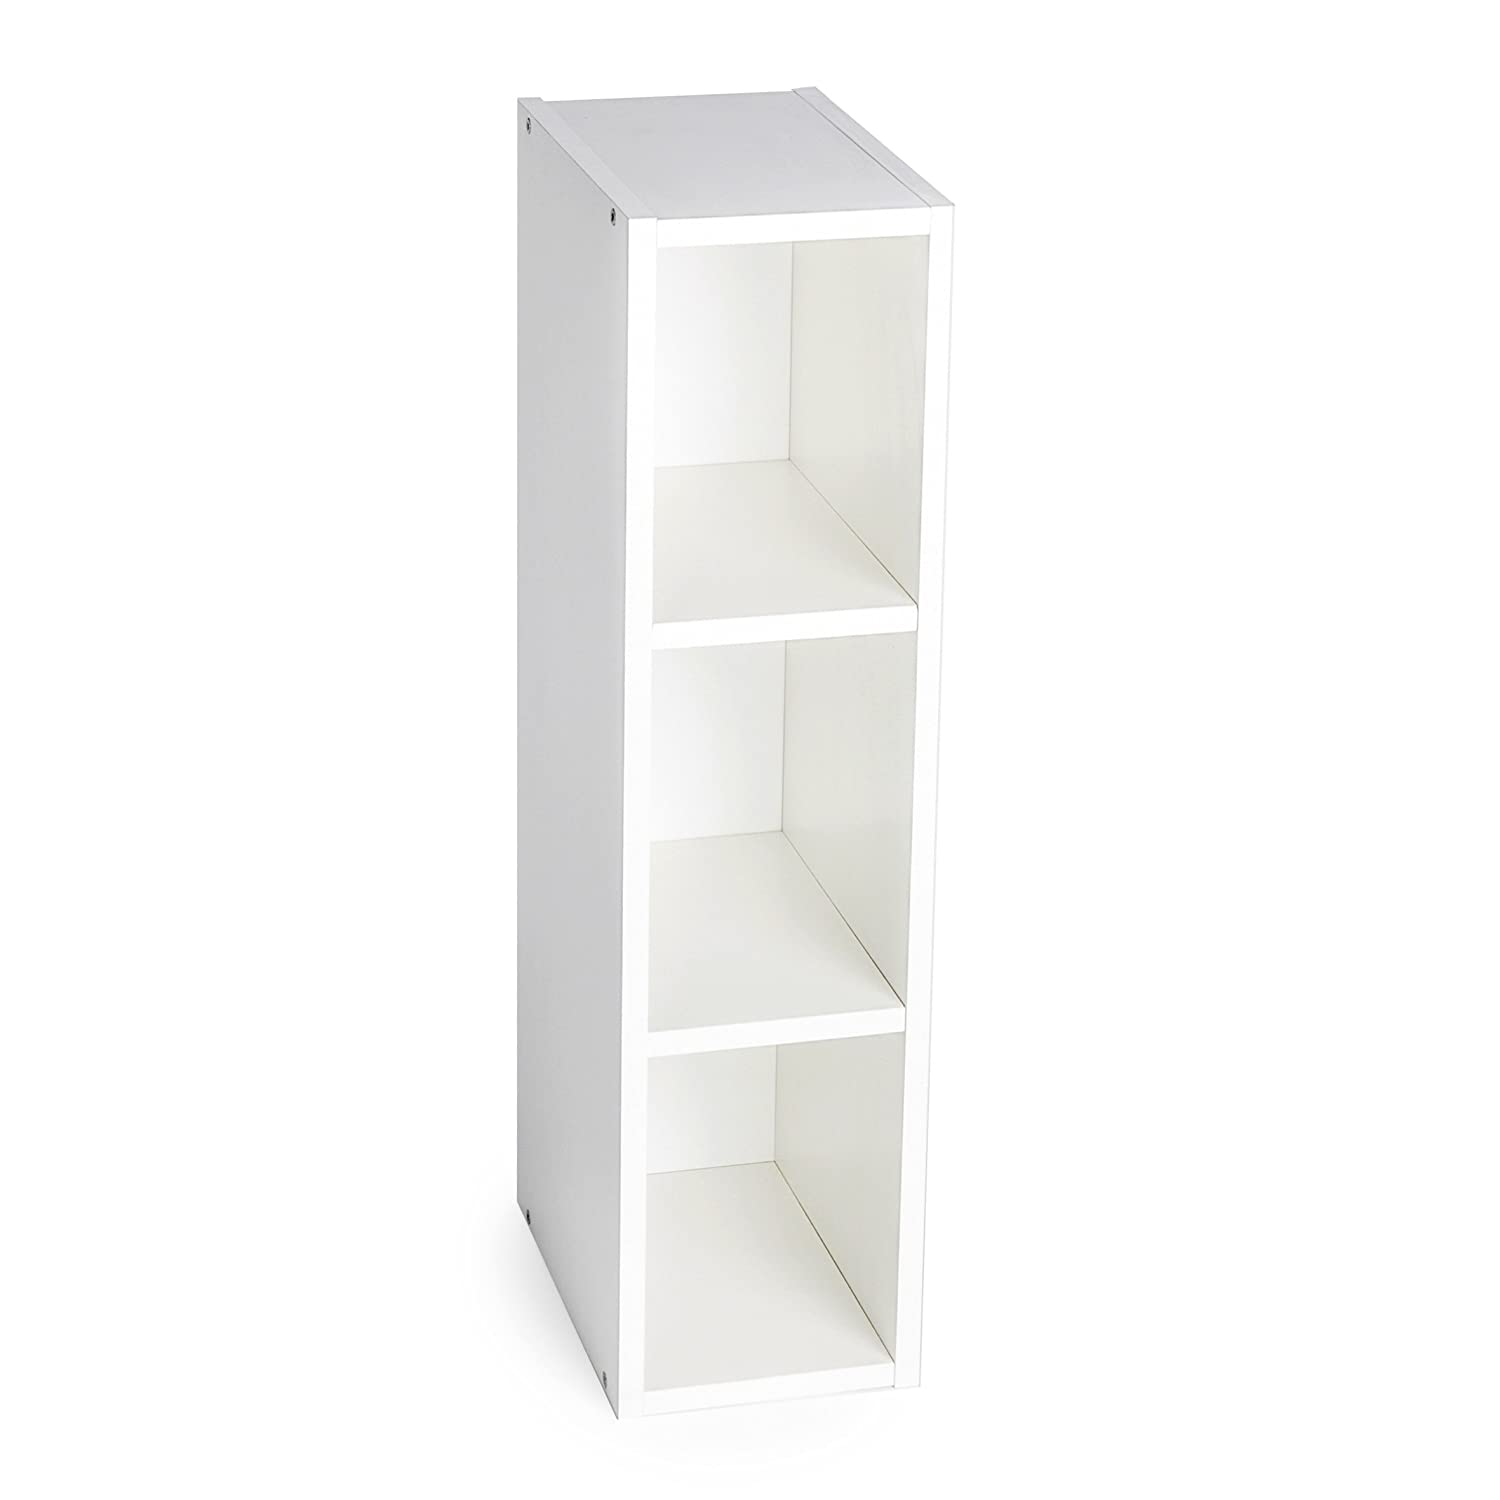 Puckdaddy Storage shelf for IKEA Malm and Koppang dresser